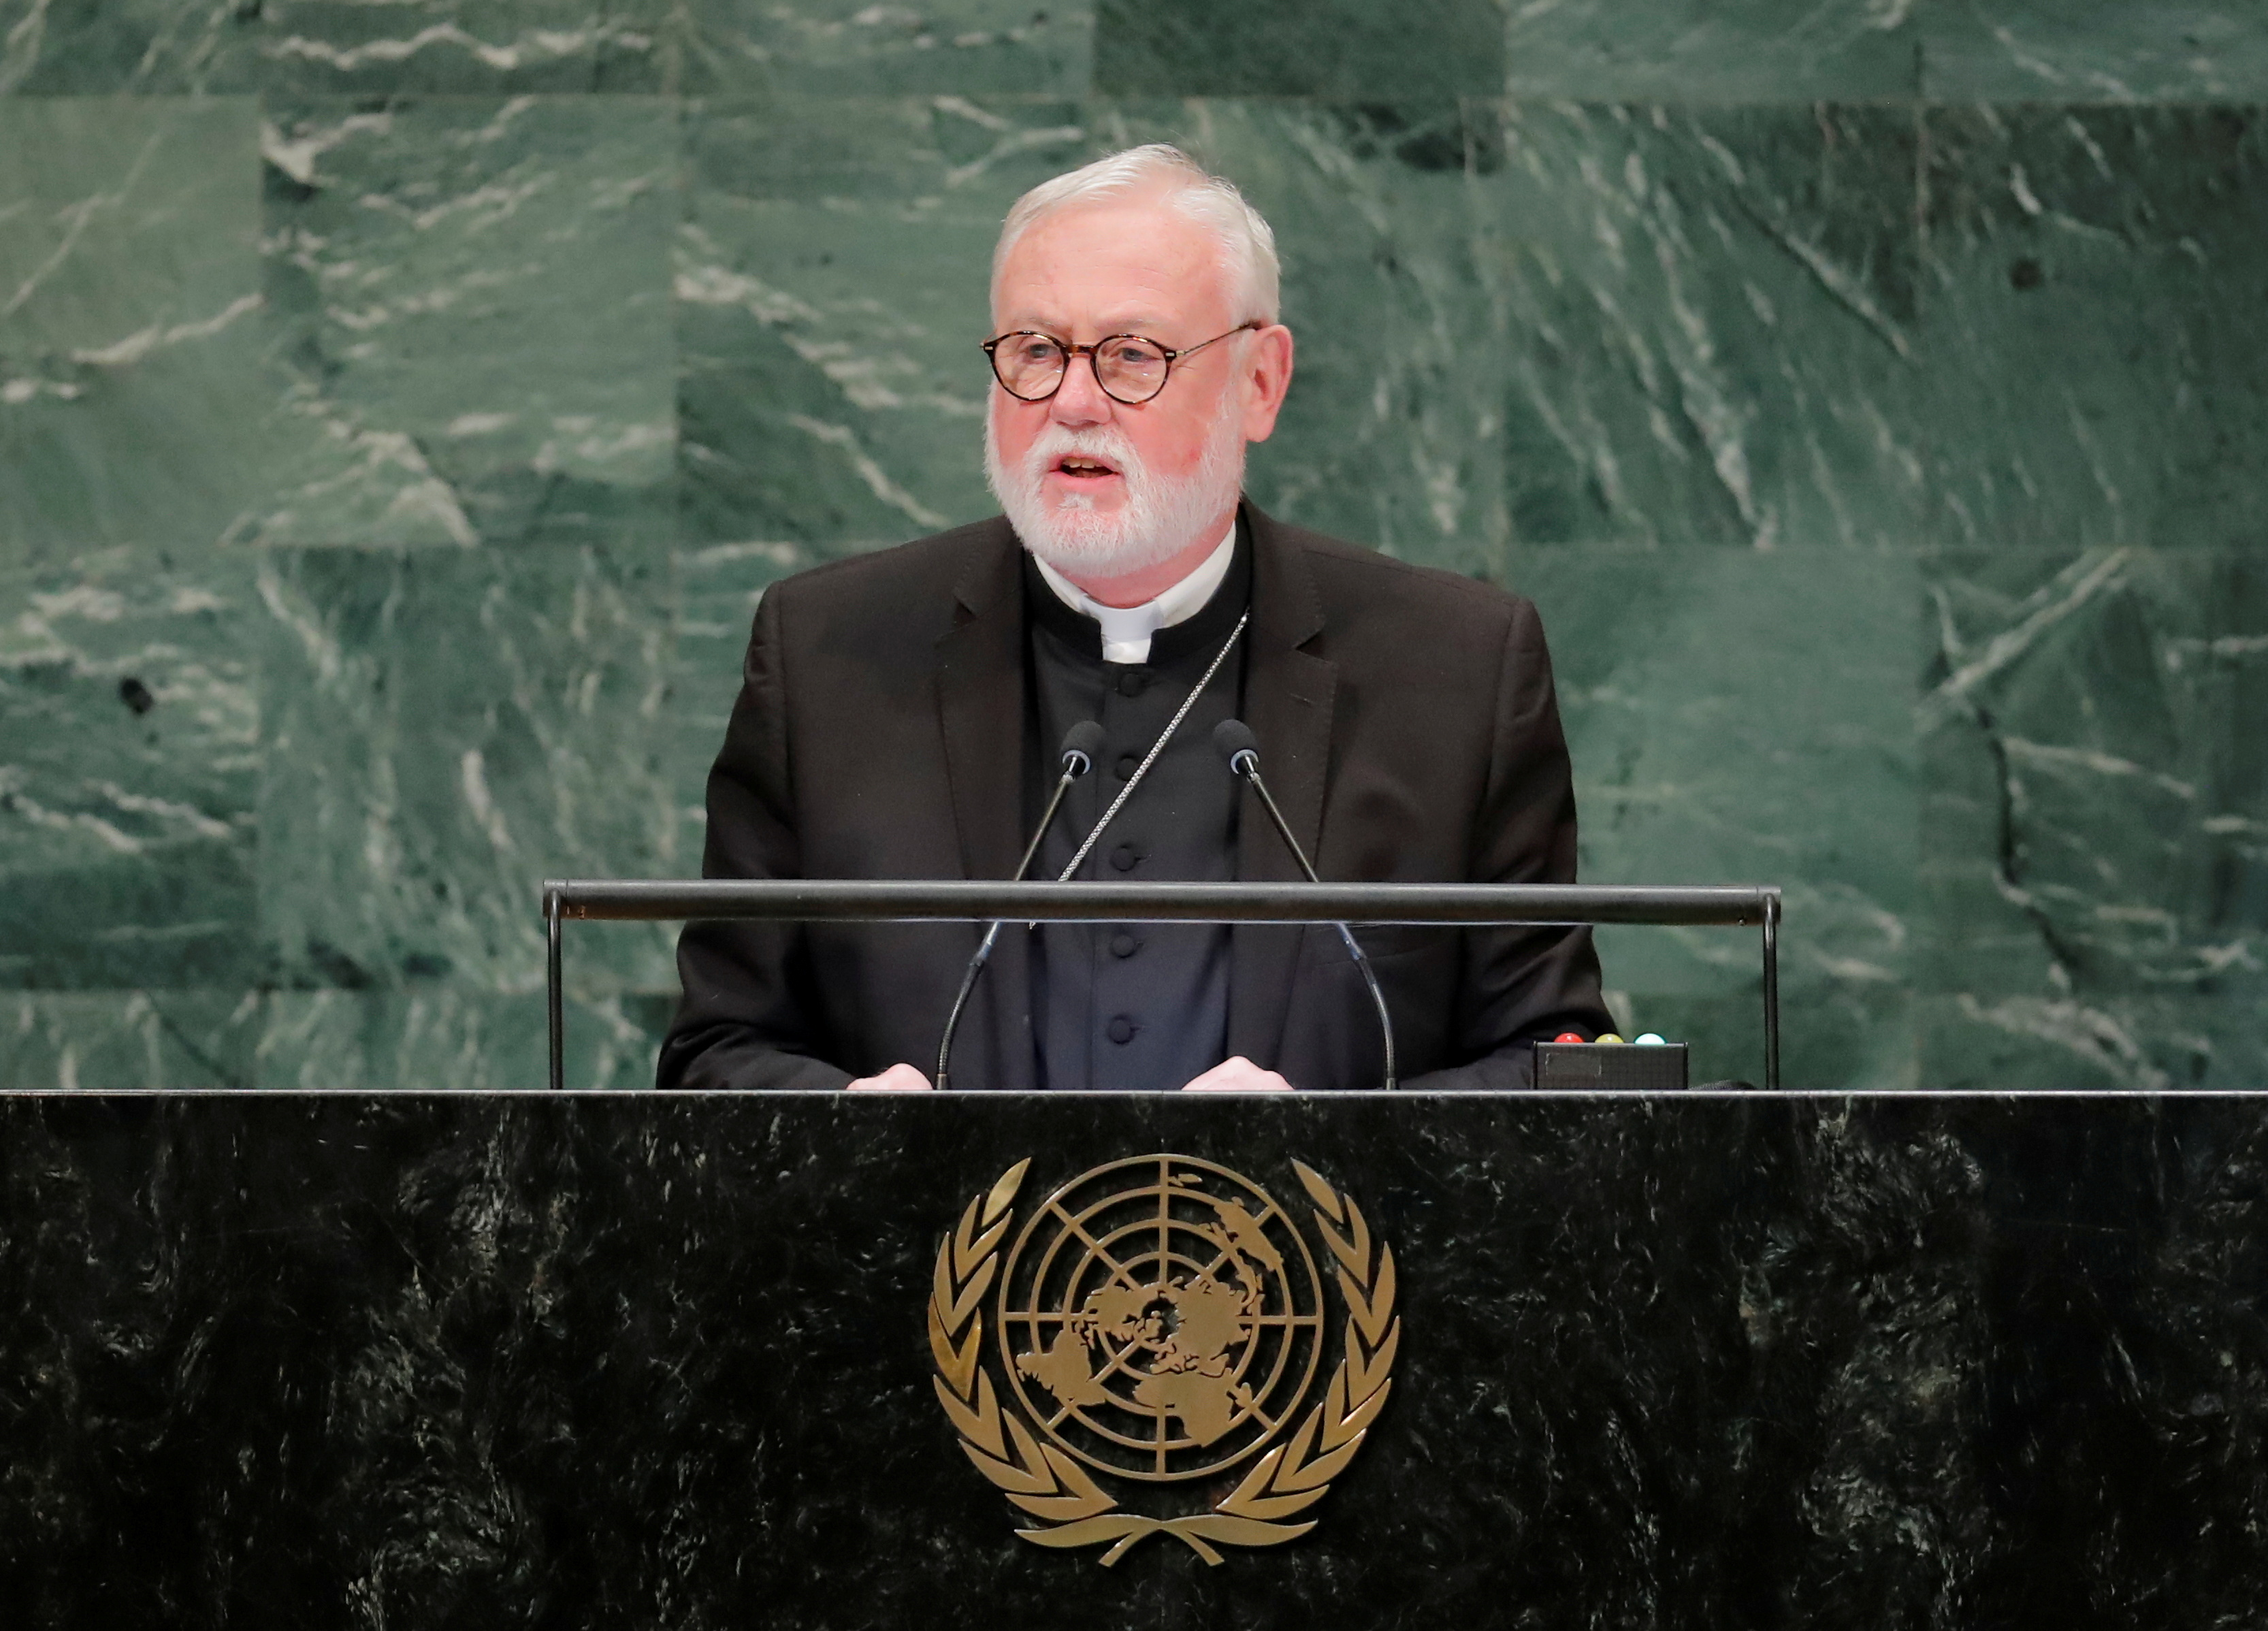 Archbishop Paul Richard Gallagher, Secretary of Relations with States for The Holy See, addresses the 73rd session of the United Nations General Assembly at U.N. headquarters in New York, U.S., October 1, 2018. REUTERS/Brendan McDermid/File Photo